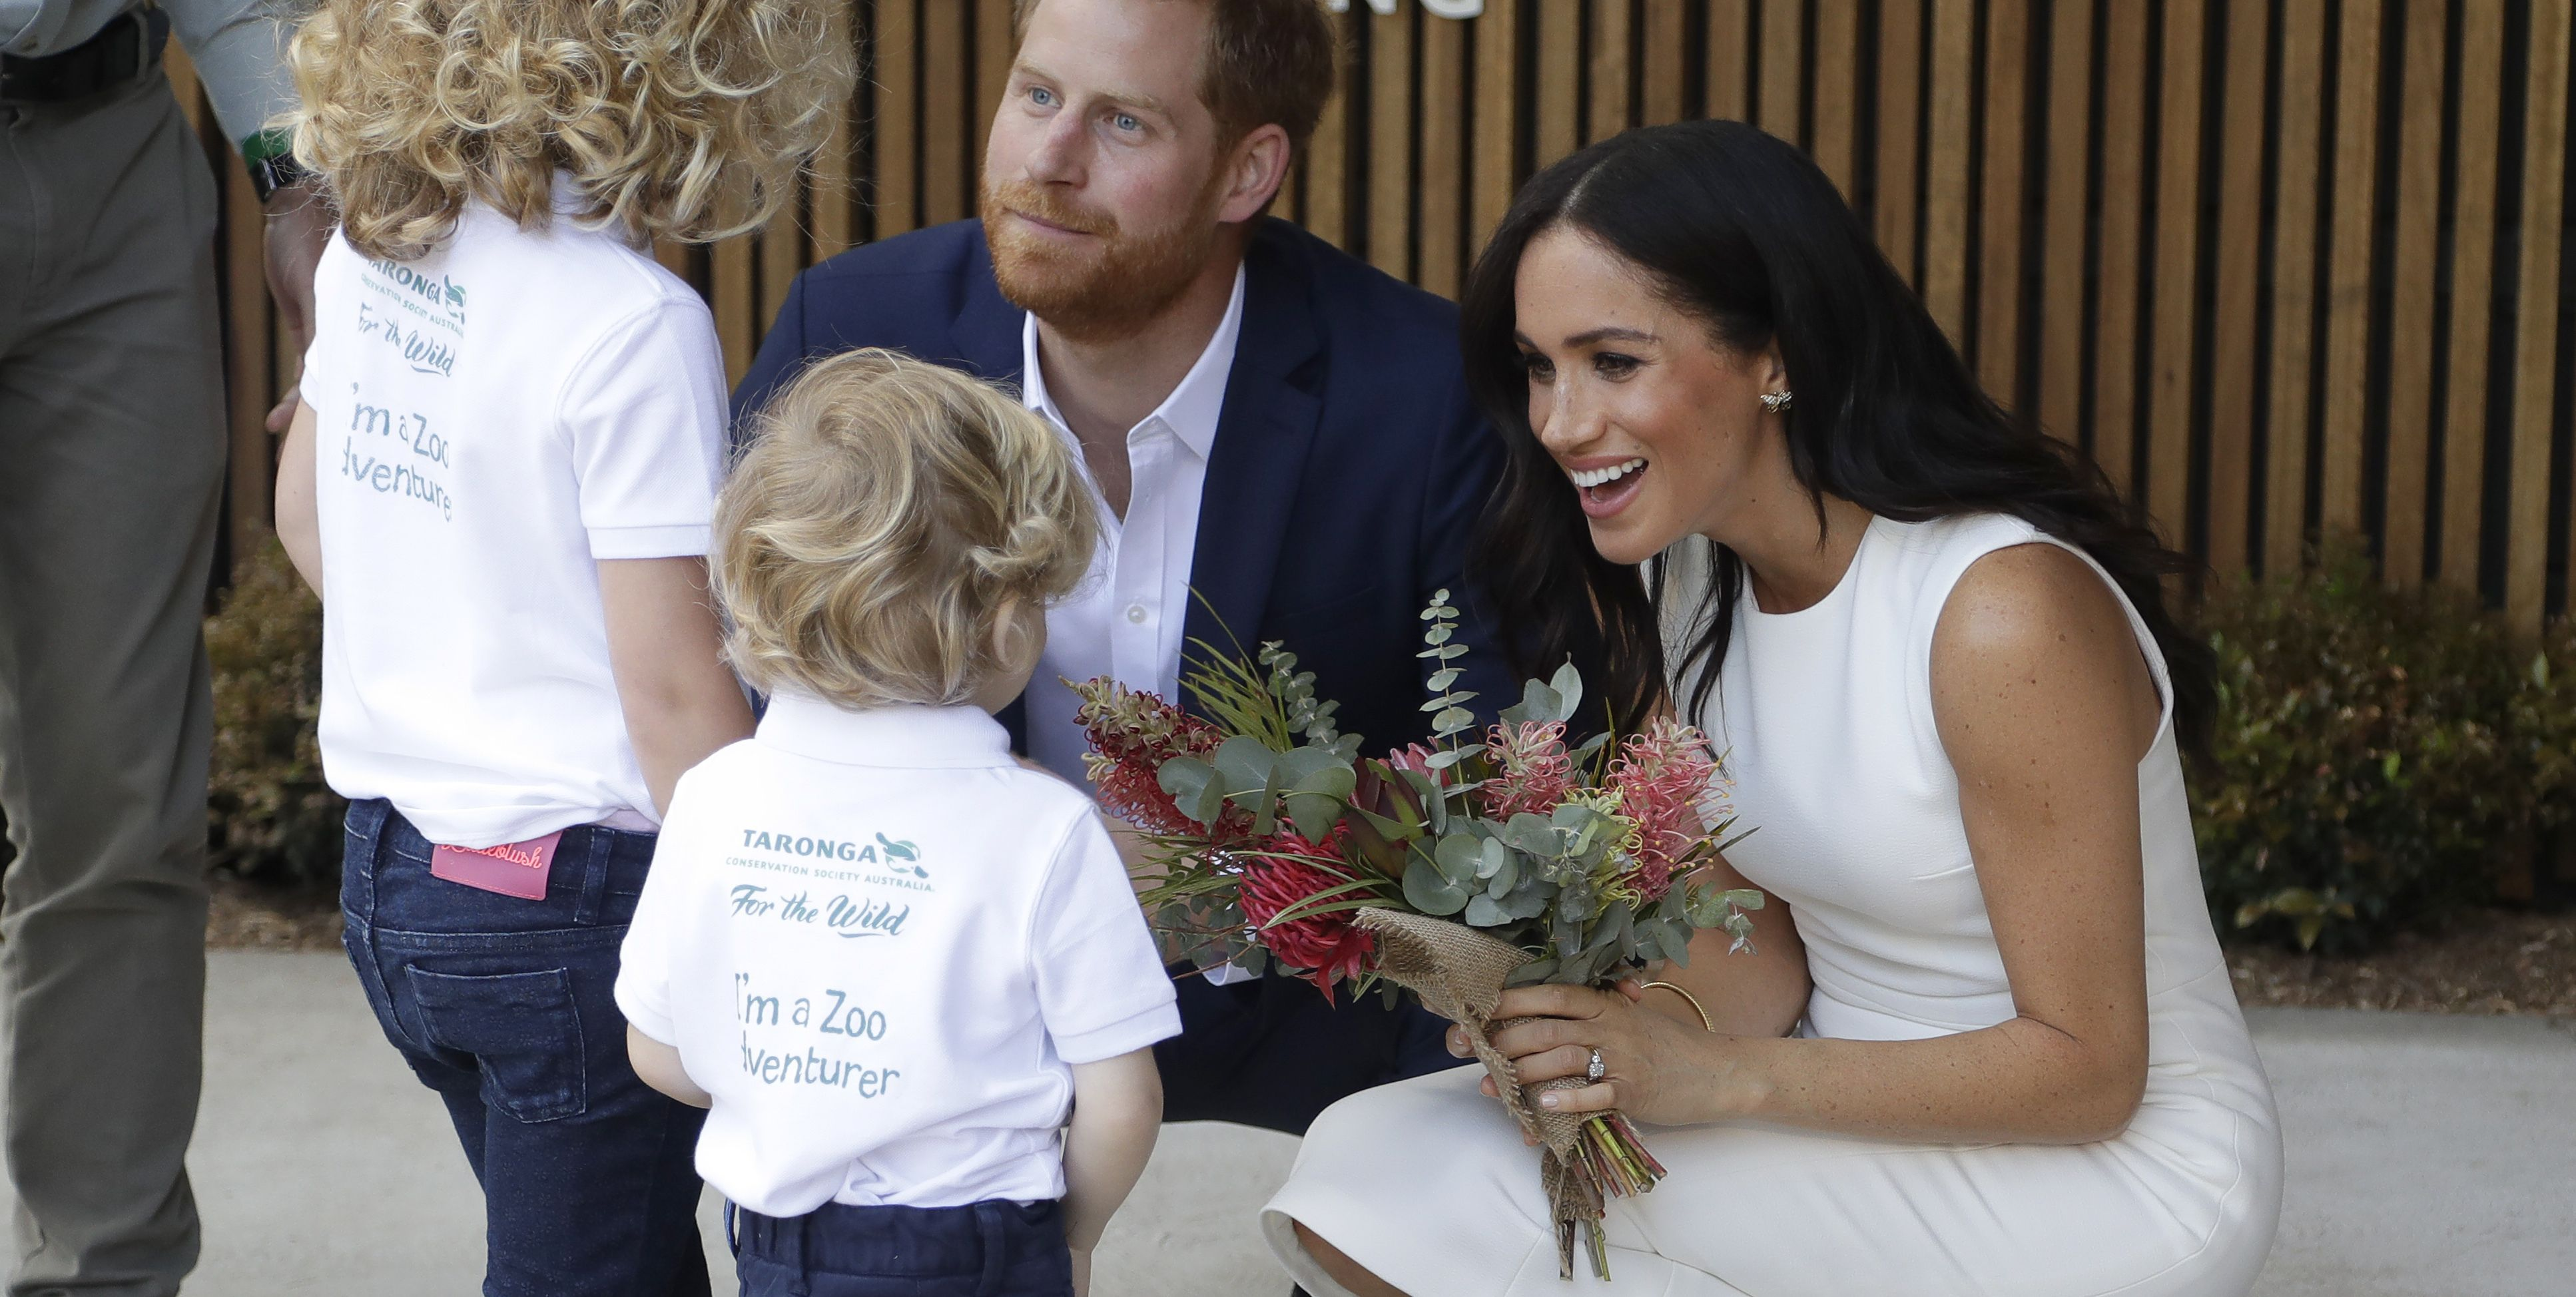 Meghan Markle and Prince Harry Body Language Towards Kids